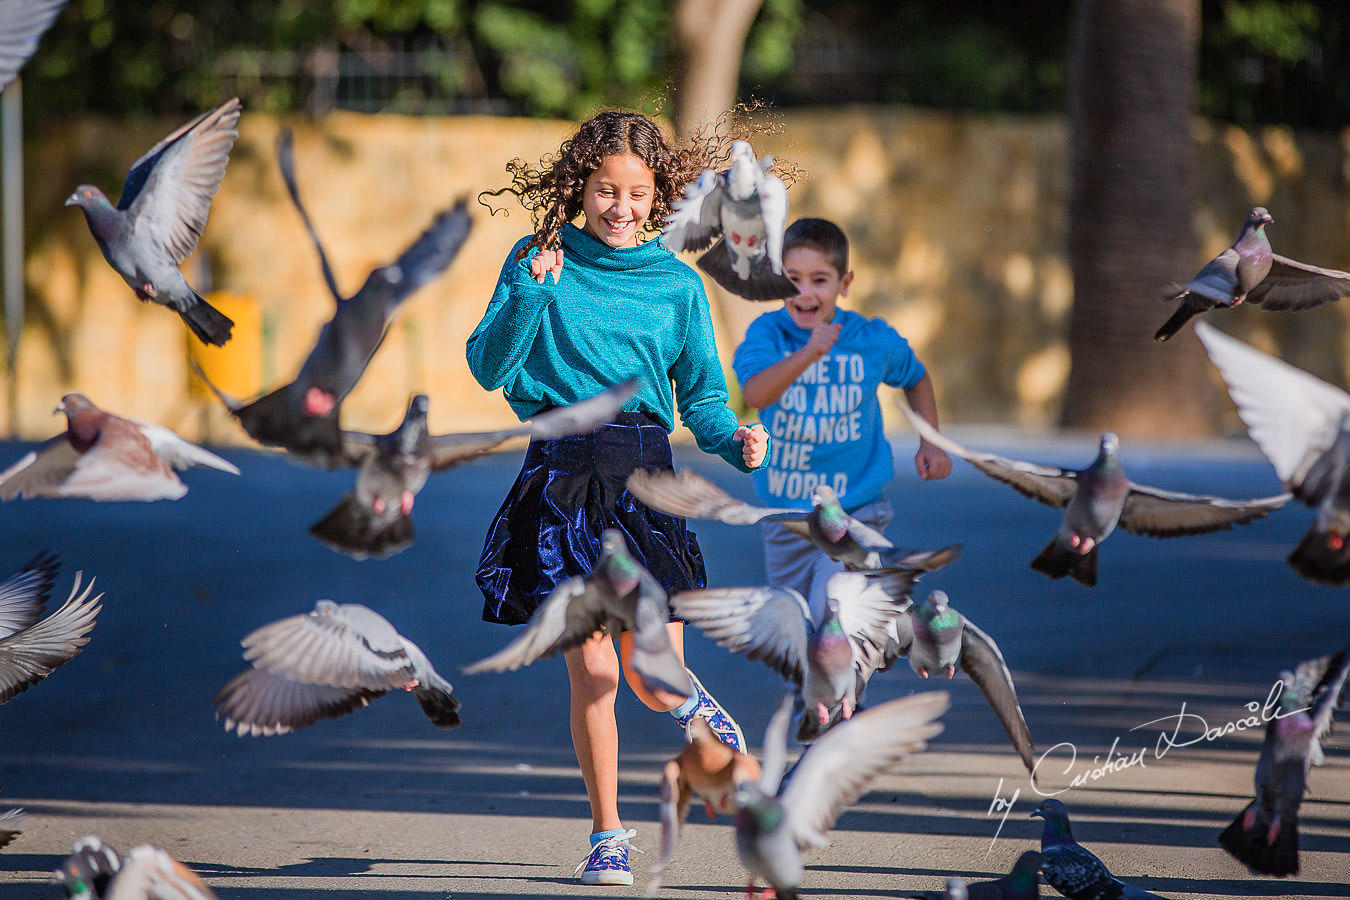 Young brother and sister running through birds, , moments captured by Cristian Dascalu during a beautiful Limassol family photography photo session.